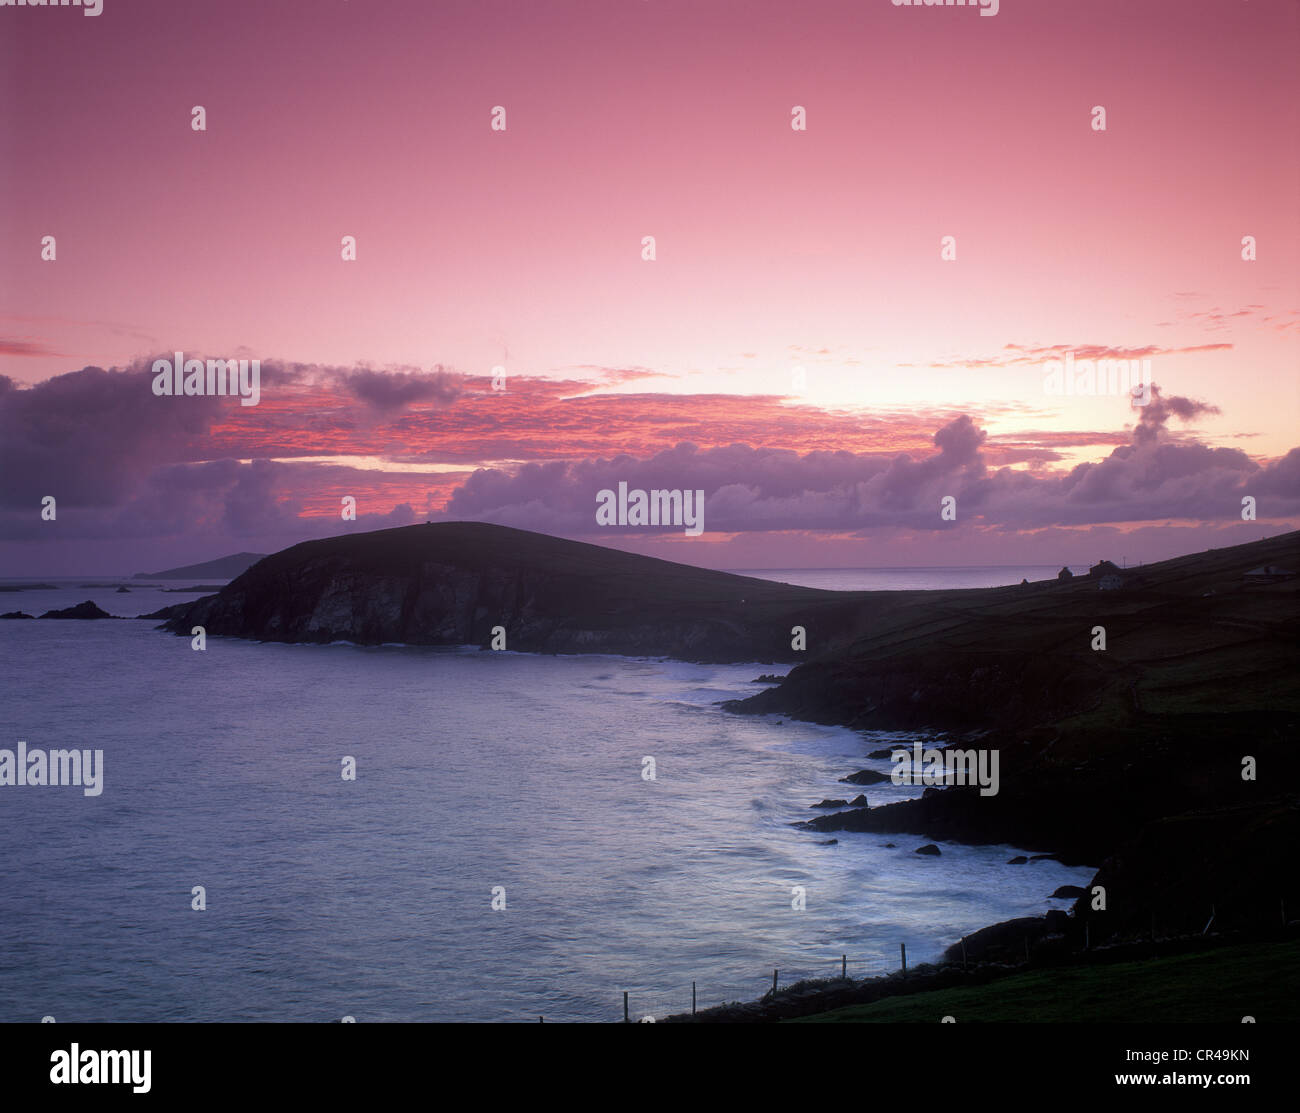 Afterglow, Slea Head, County Kerry, Republic of Ireland, Europe - Stock Image